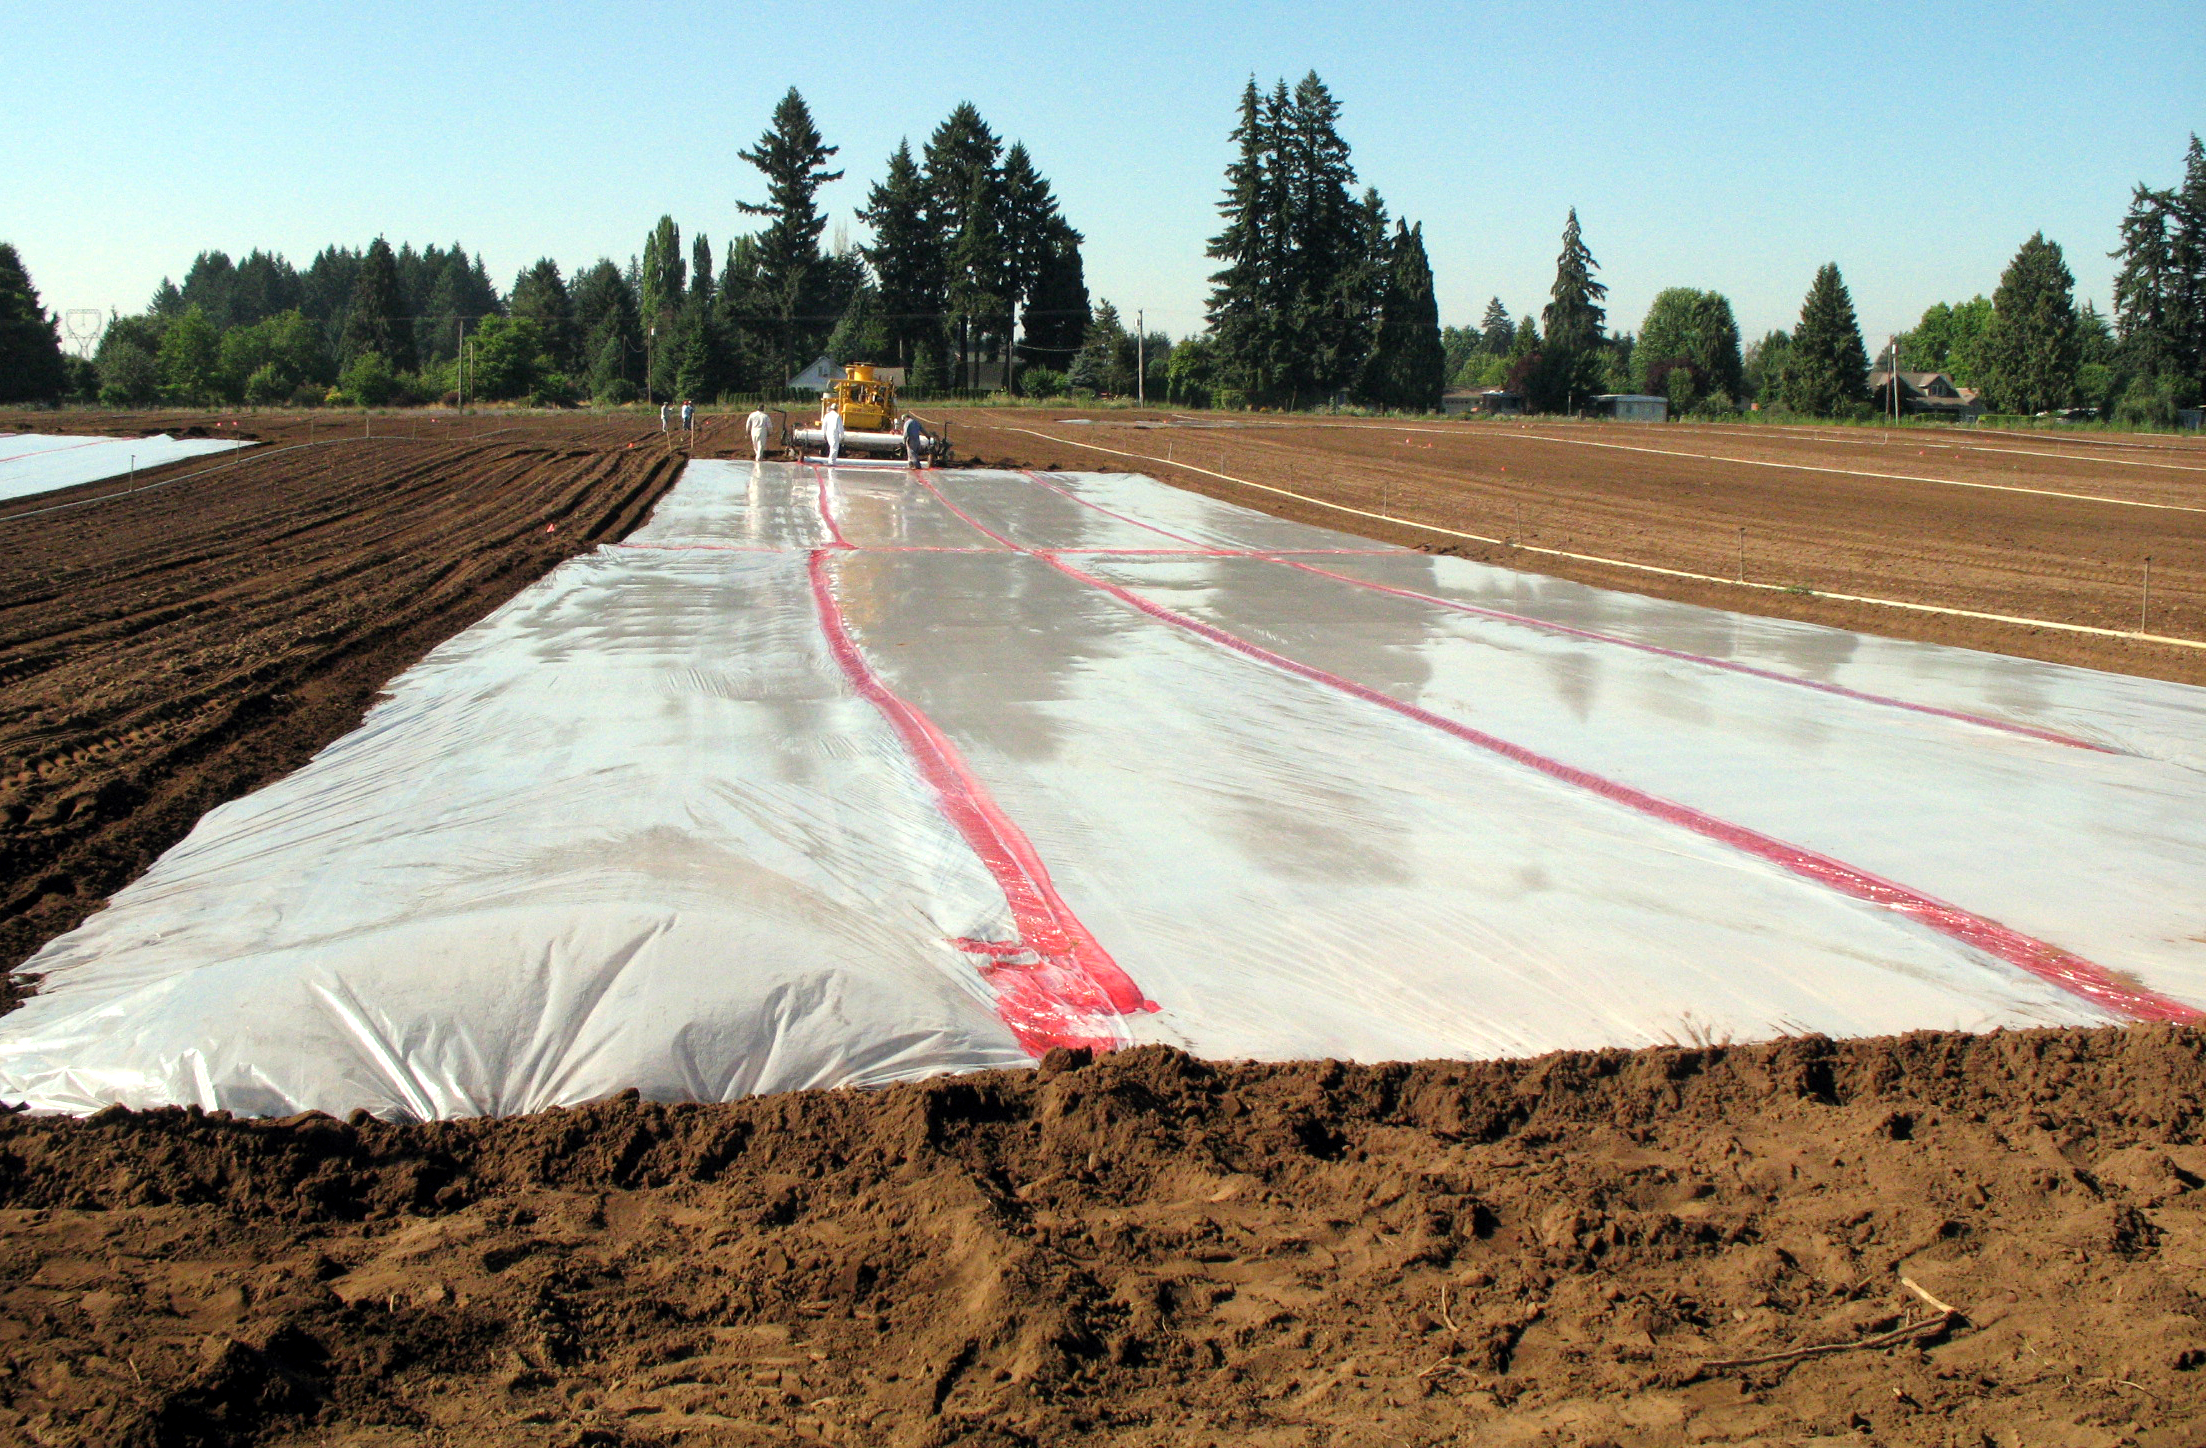 Fumigating soils for nematode control pacific northwest for Pictures of uses of soil